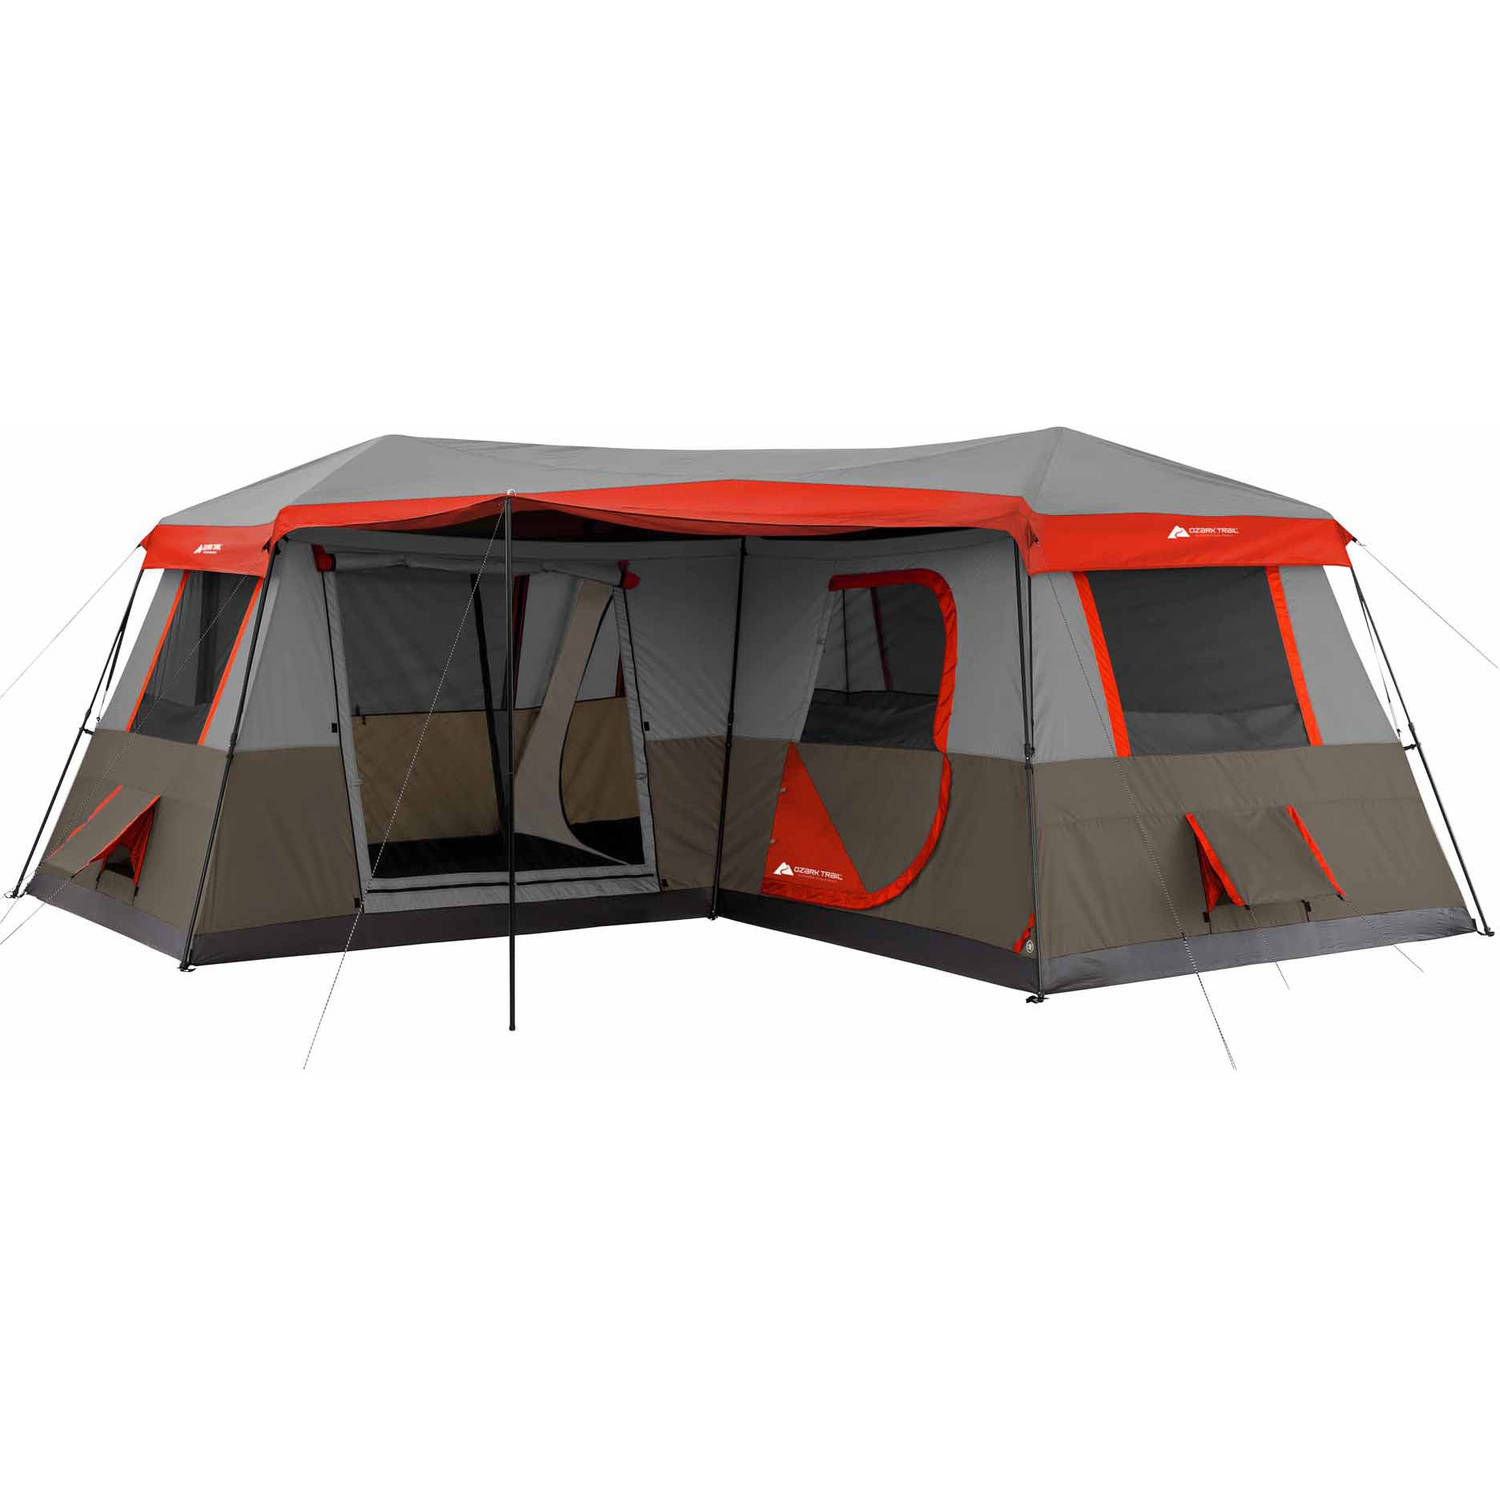 Eurohike Windsor tent with 3 bedroom pods - sleeps 6! | in Exeter ...